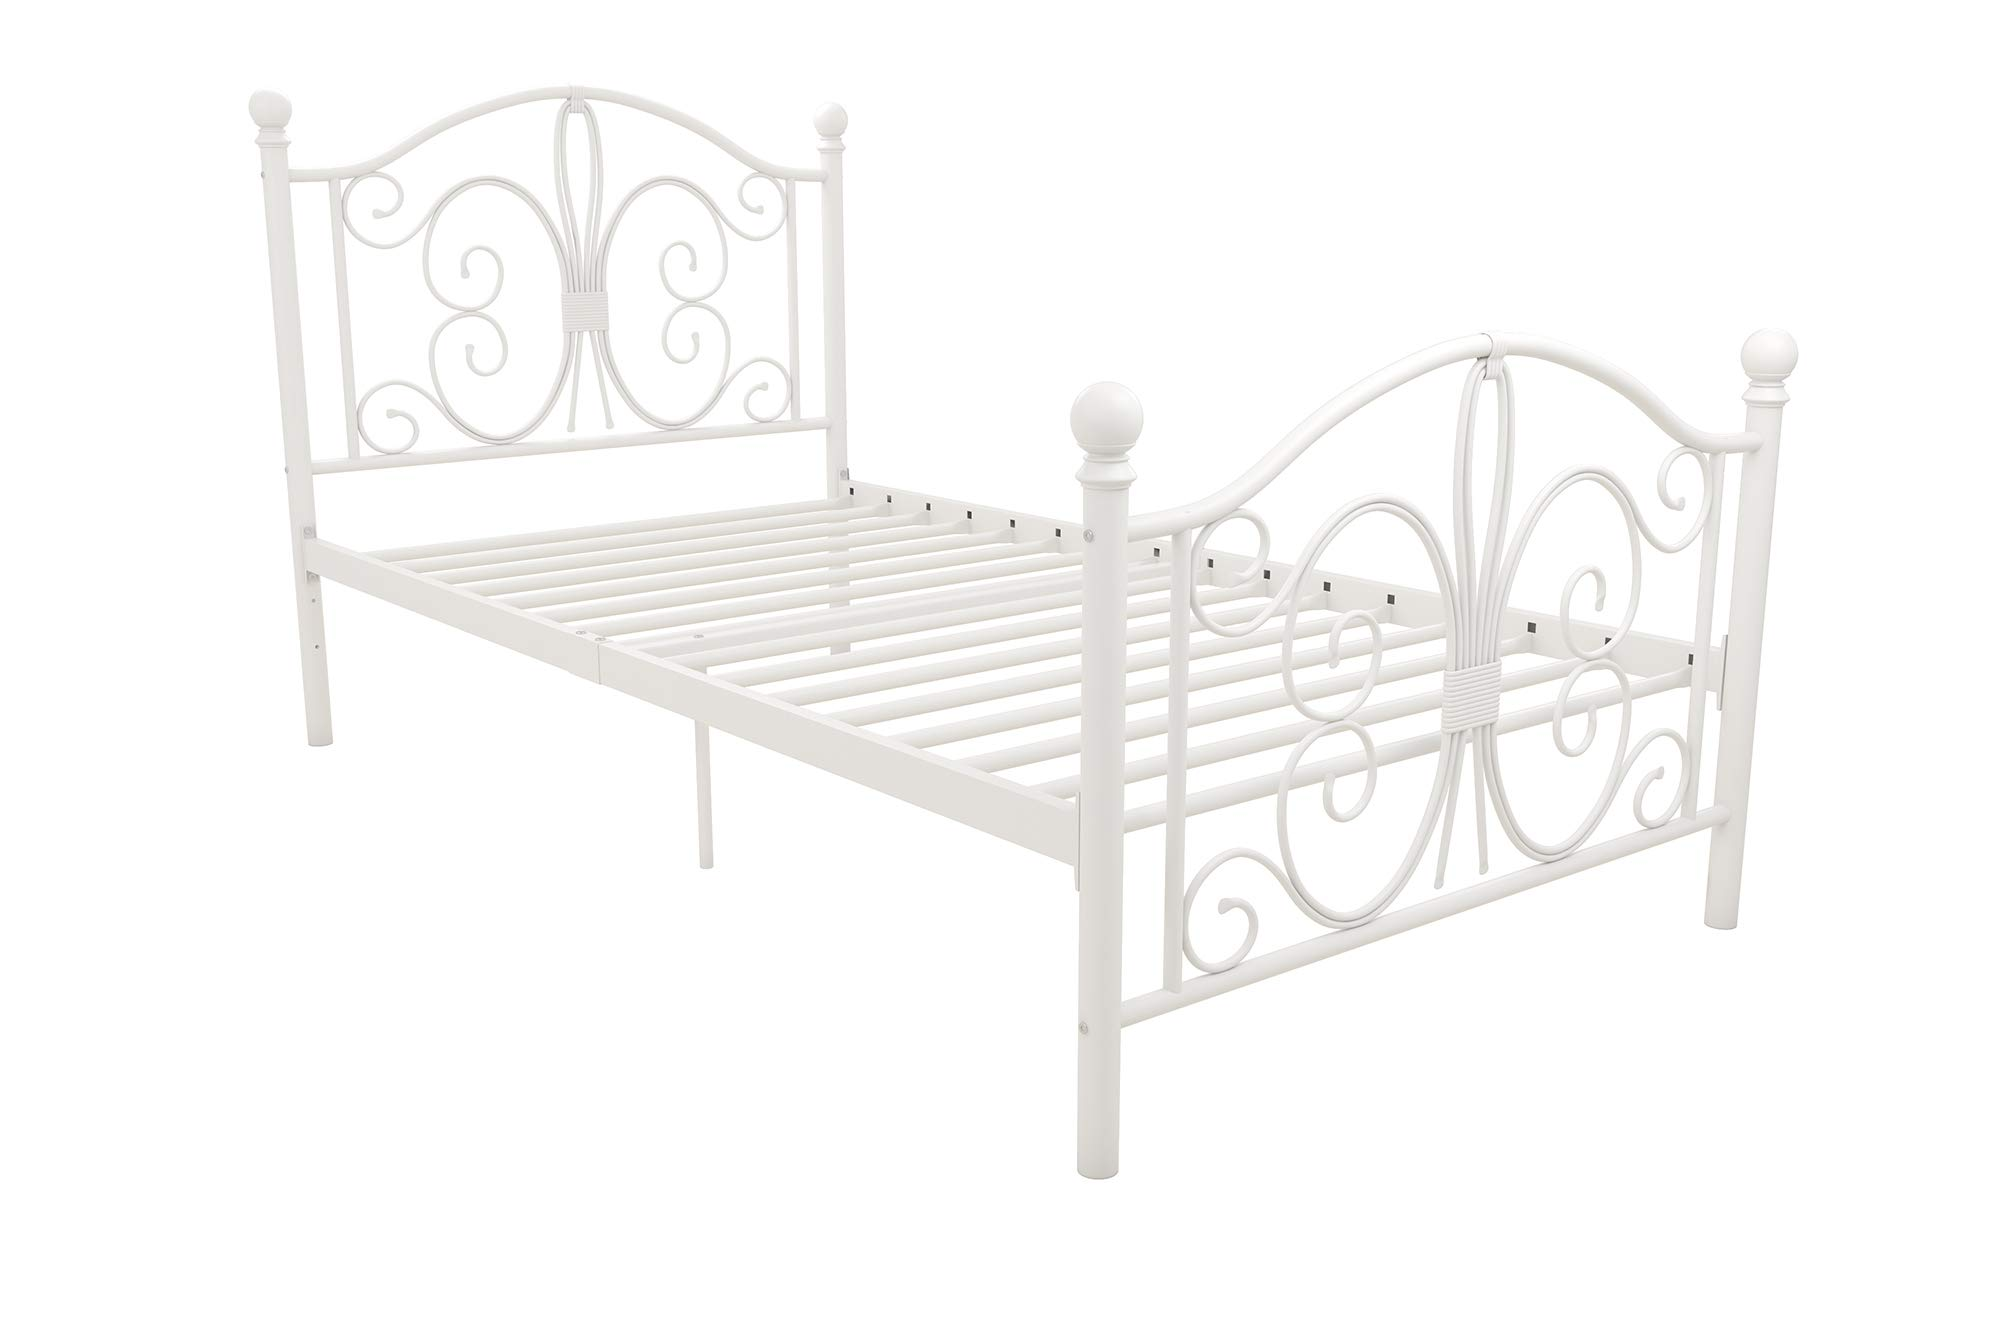 DHP Vintage Design Bombay Bed Frame with Metal Slats, Twin, White by DHP